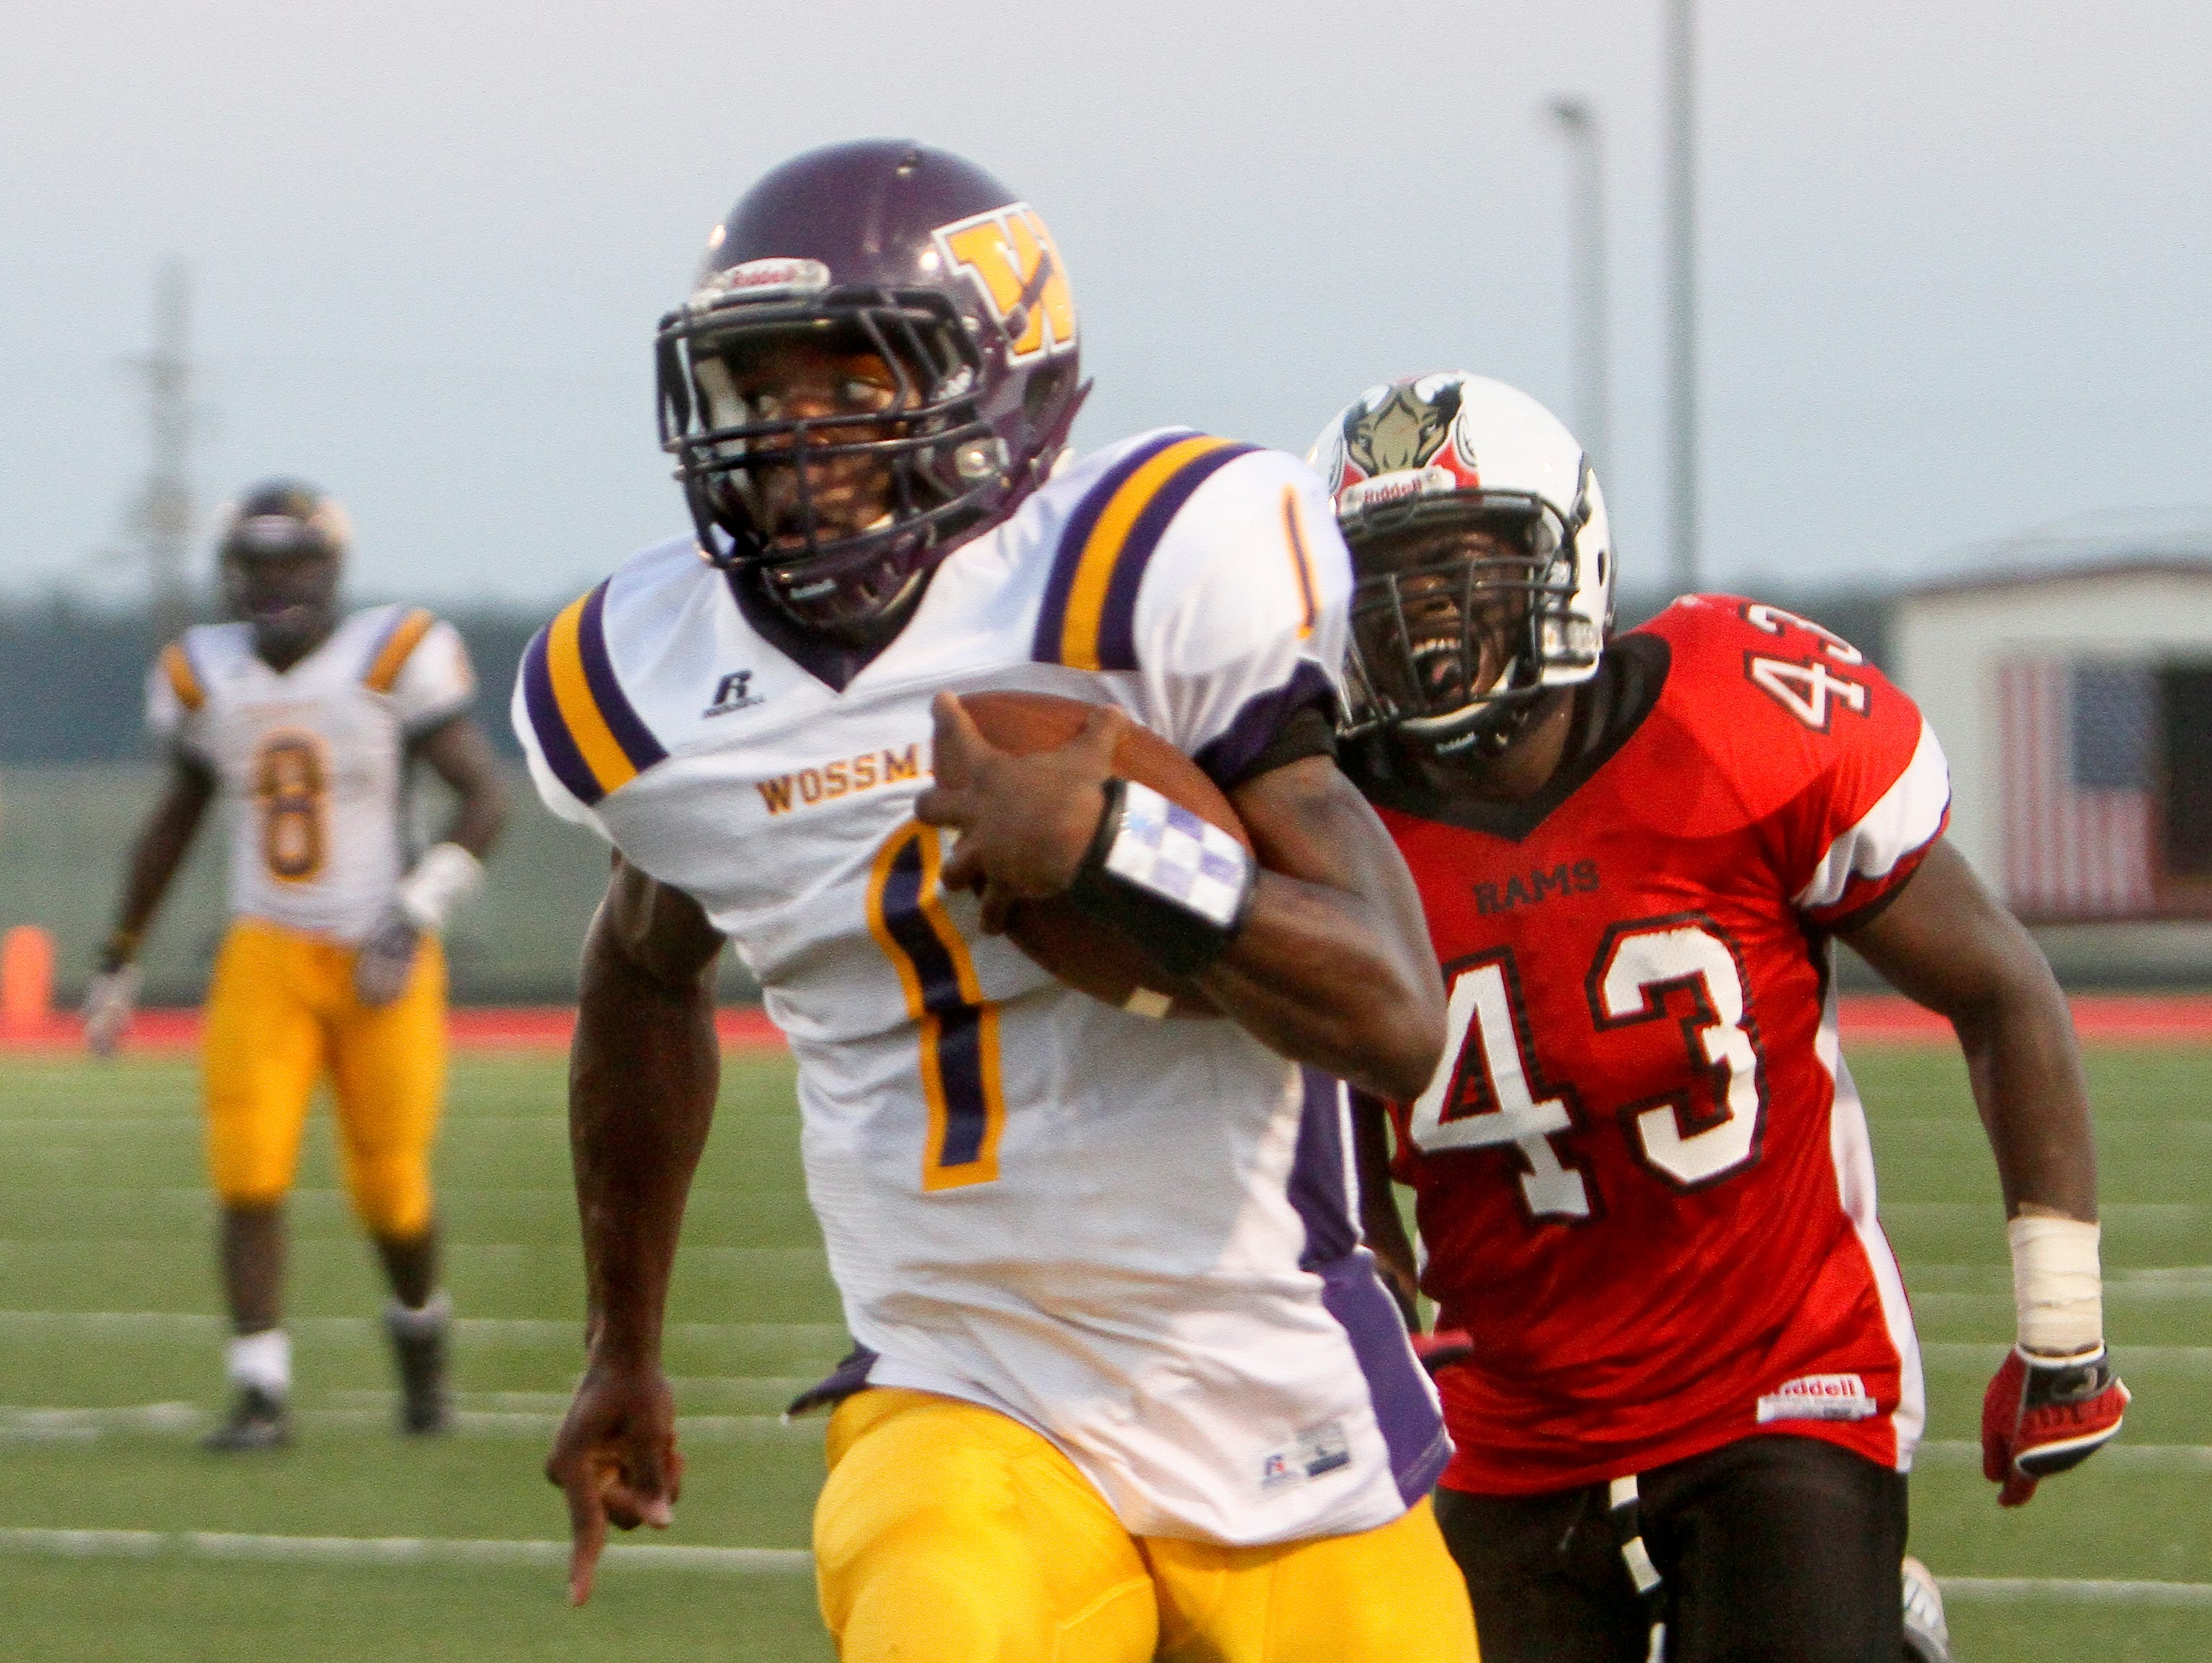 Wossman QB Cameron Lewis (1) outruns Richwood's Tyquan Pleasant (43) and into the end zone for the first touchdown against the Rams.